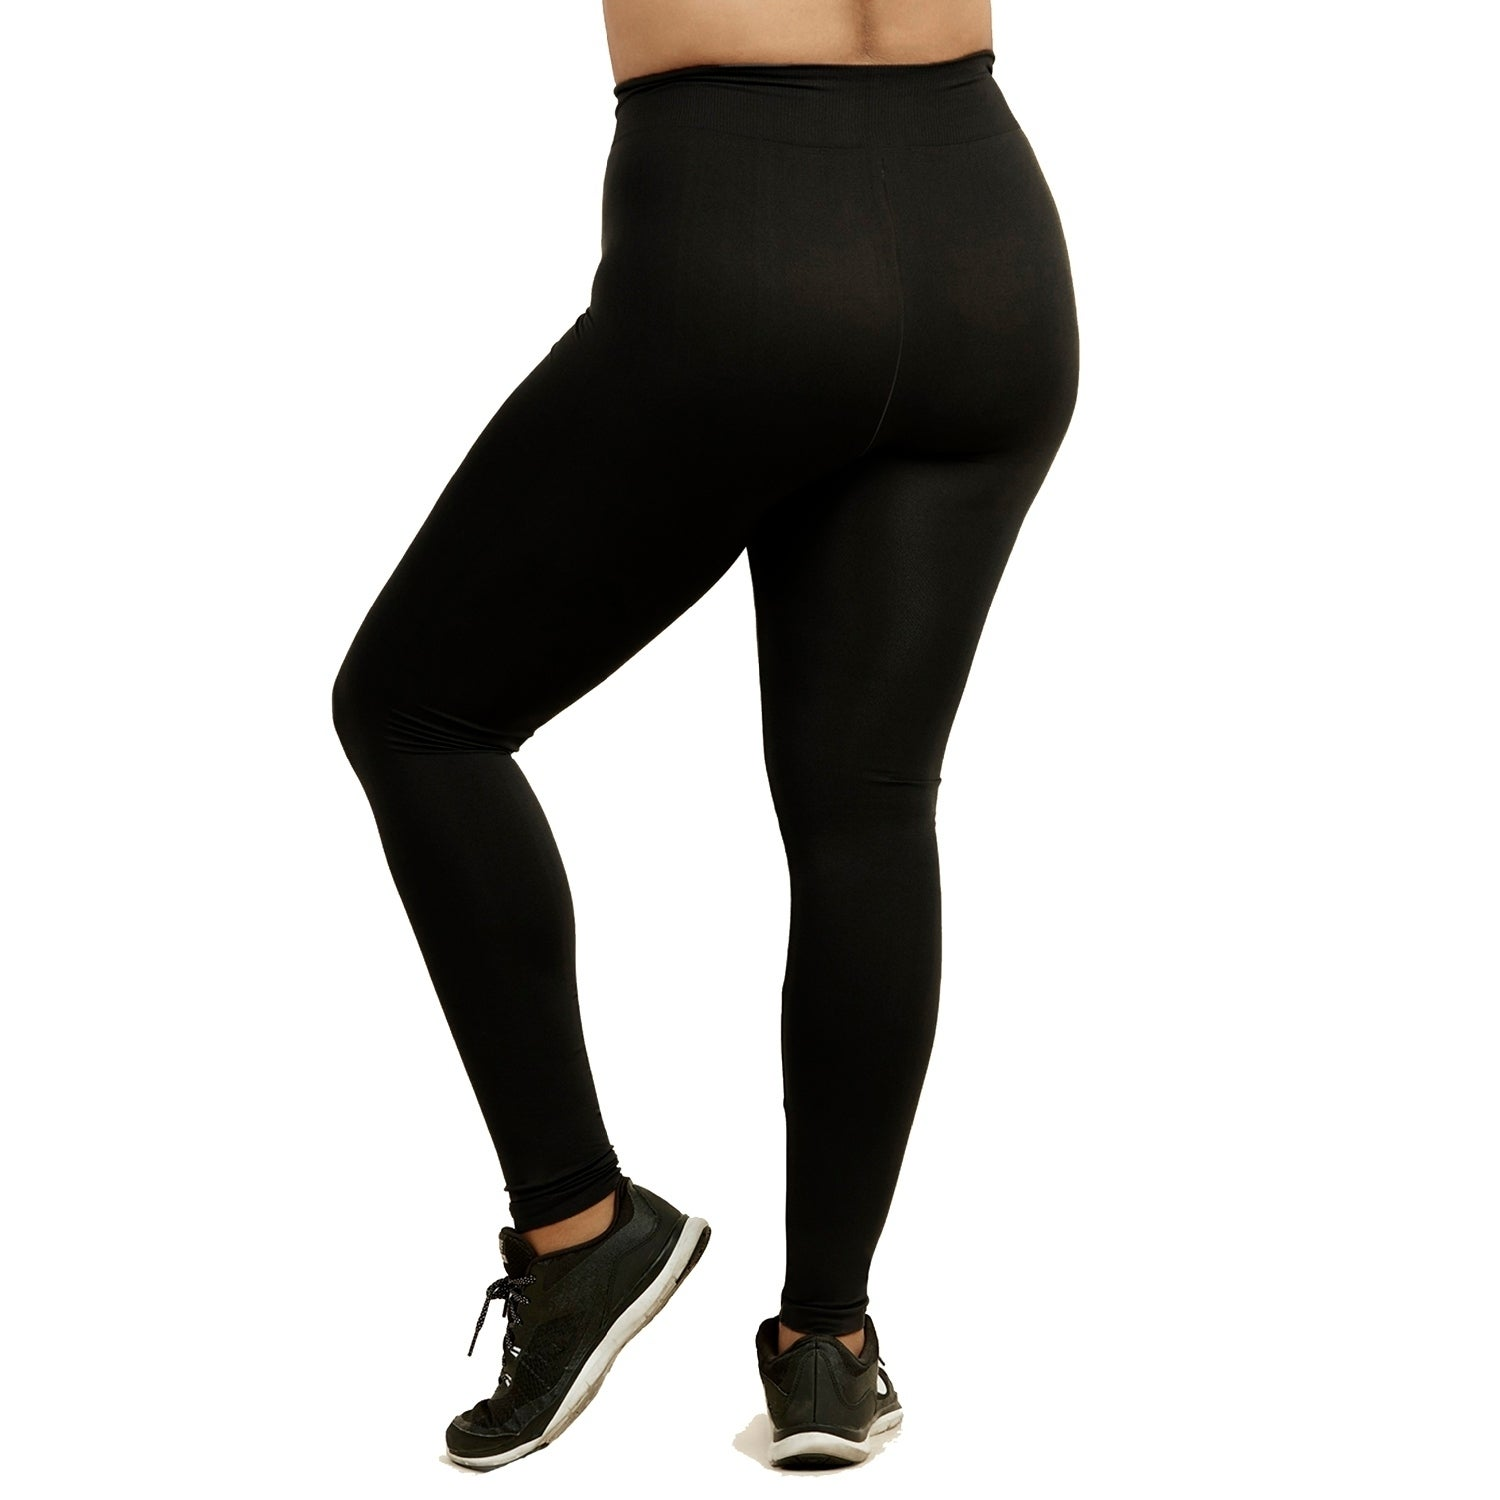 e33130f98c0 Shop Mopas Ladies Nylon Leggings Plus Size - Free Shipping On Orders Over   45 - Overstock - 21479596